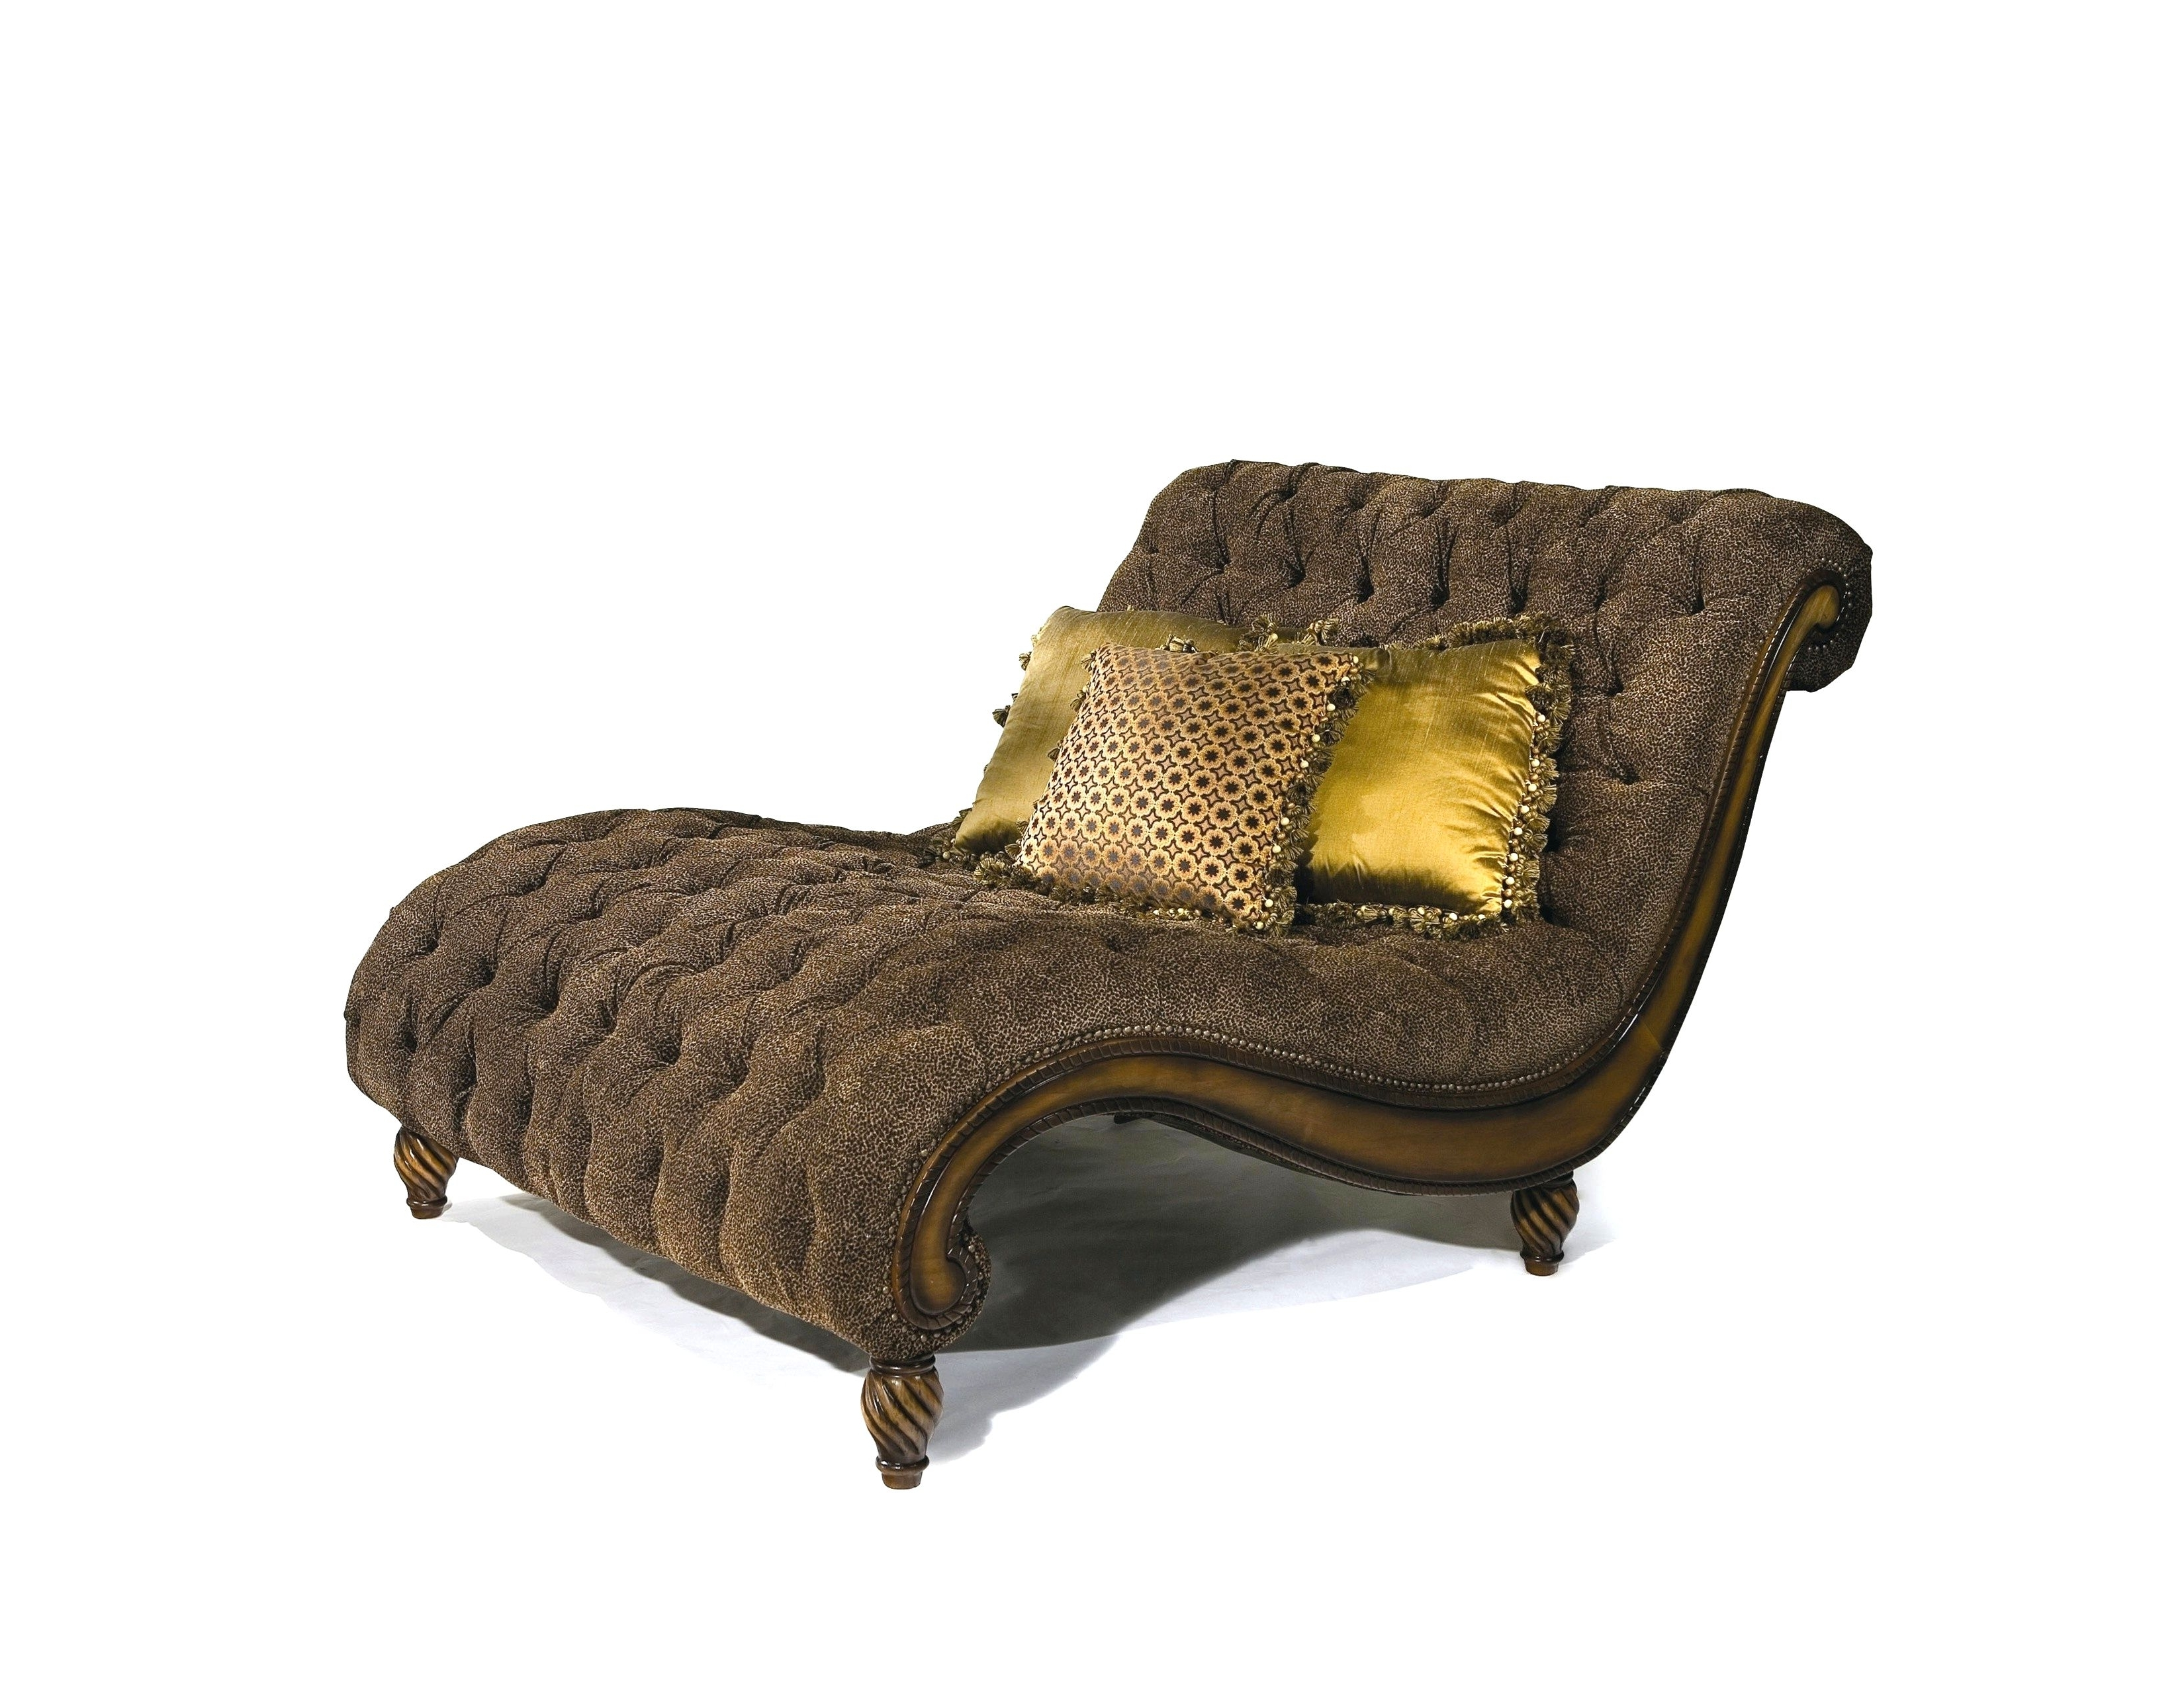 Animal Print Chaise Lounge Mariaalcocer Beautiful Of Leopard Pertaining To Best And Newest Leopard Chaises (View 7 of 15)